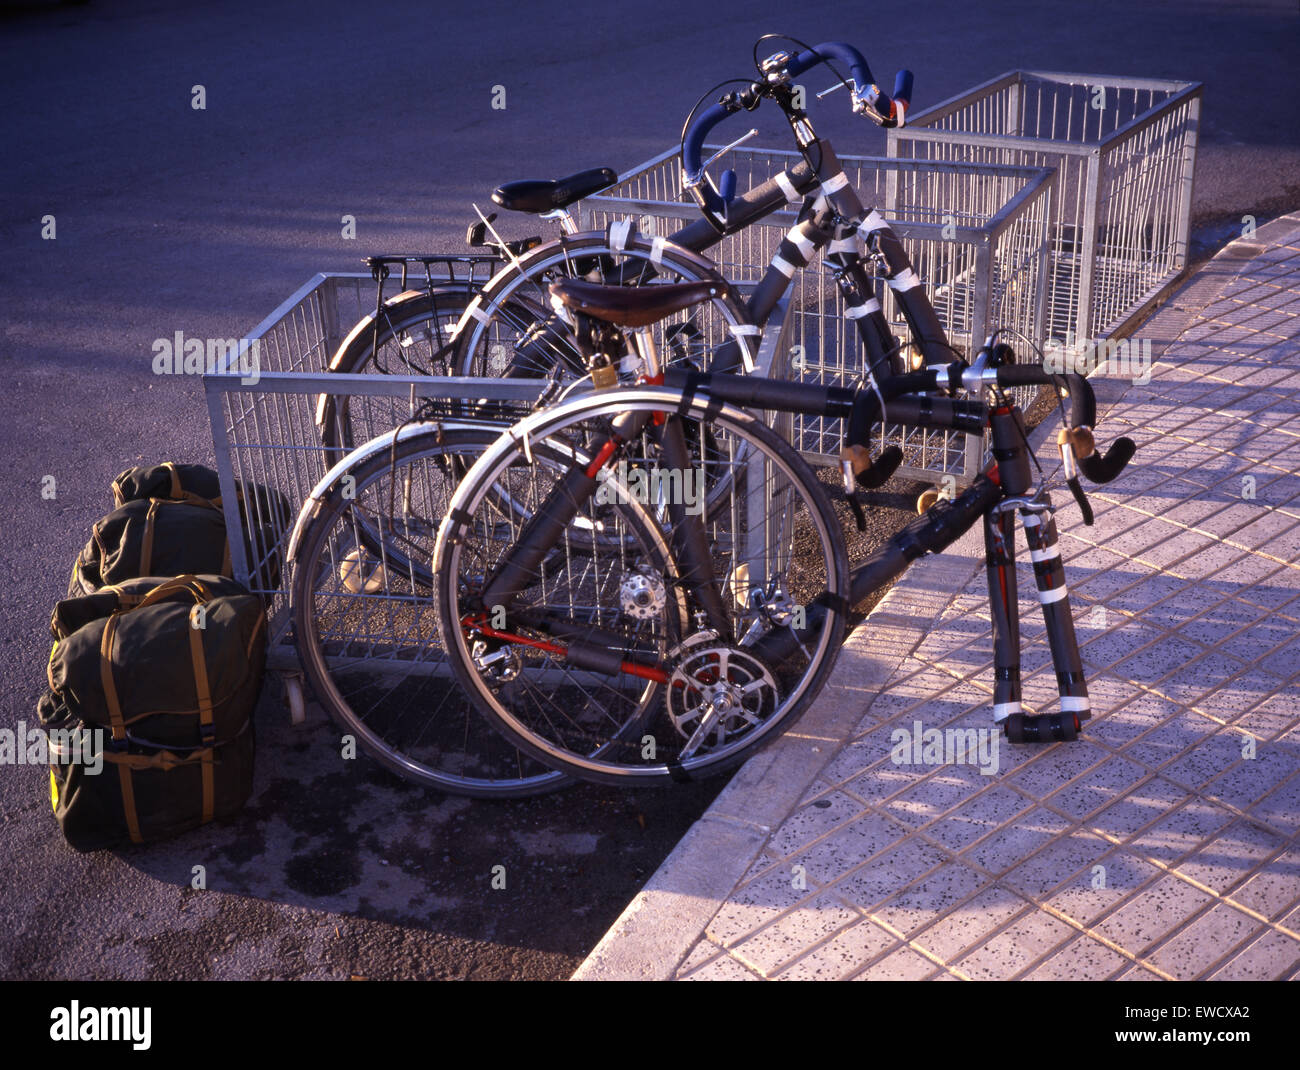 Partly dismantled cycles, prepared for flight as hold baggage. - Stock Image